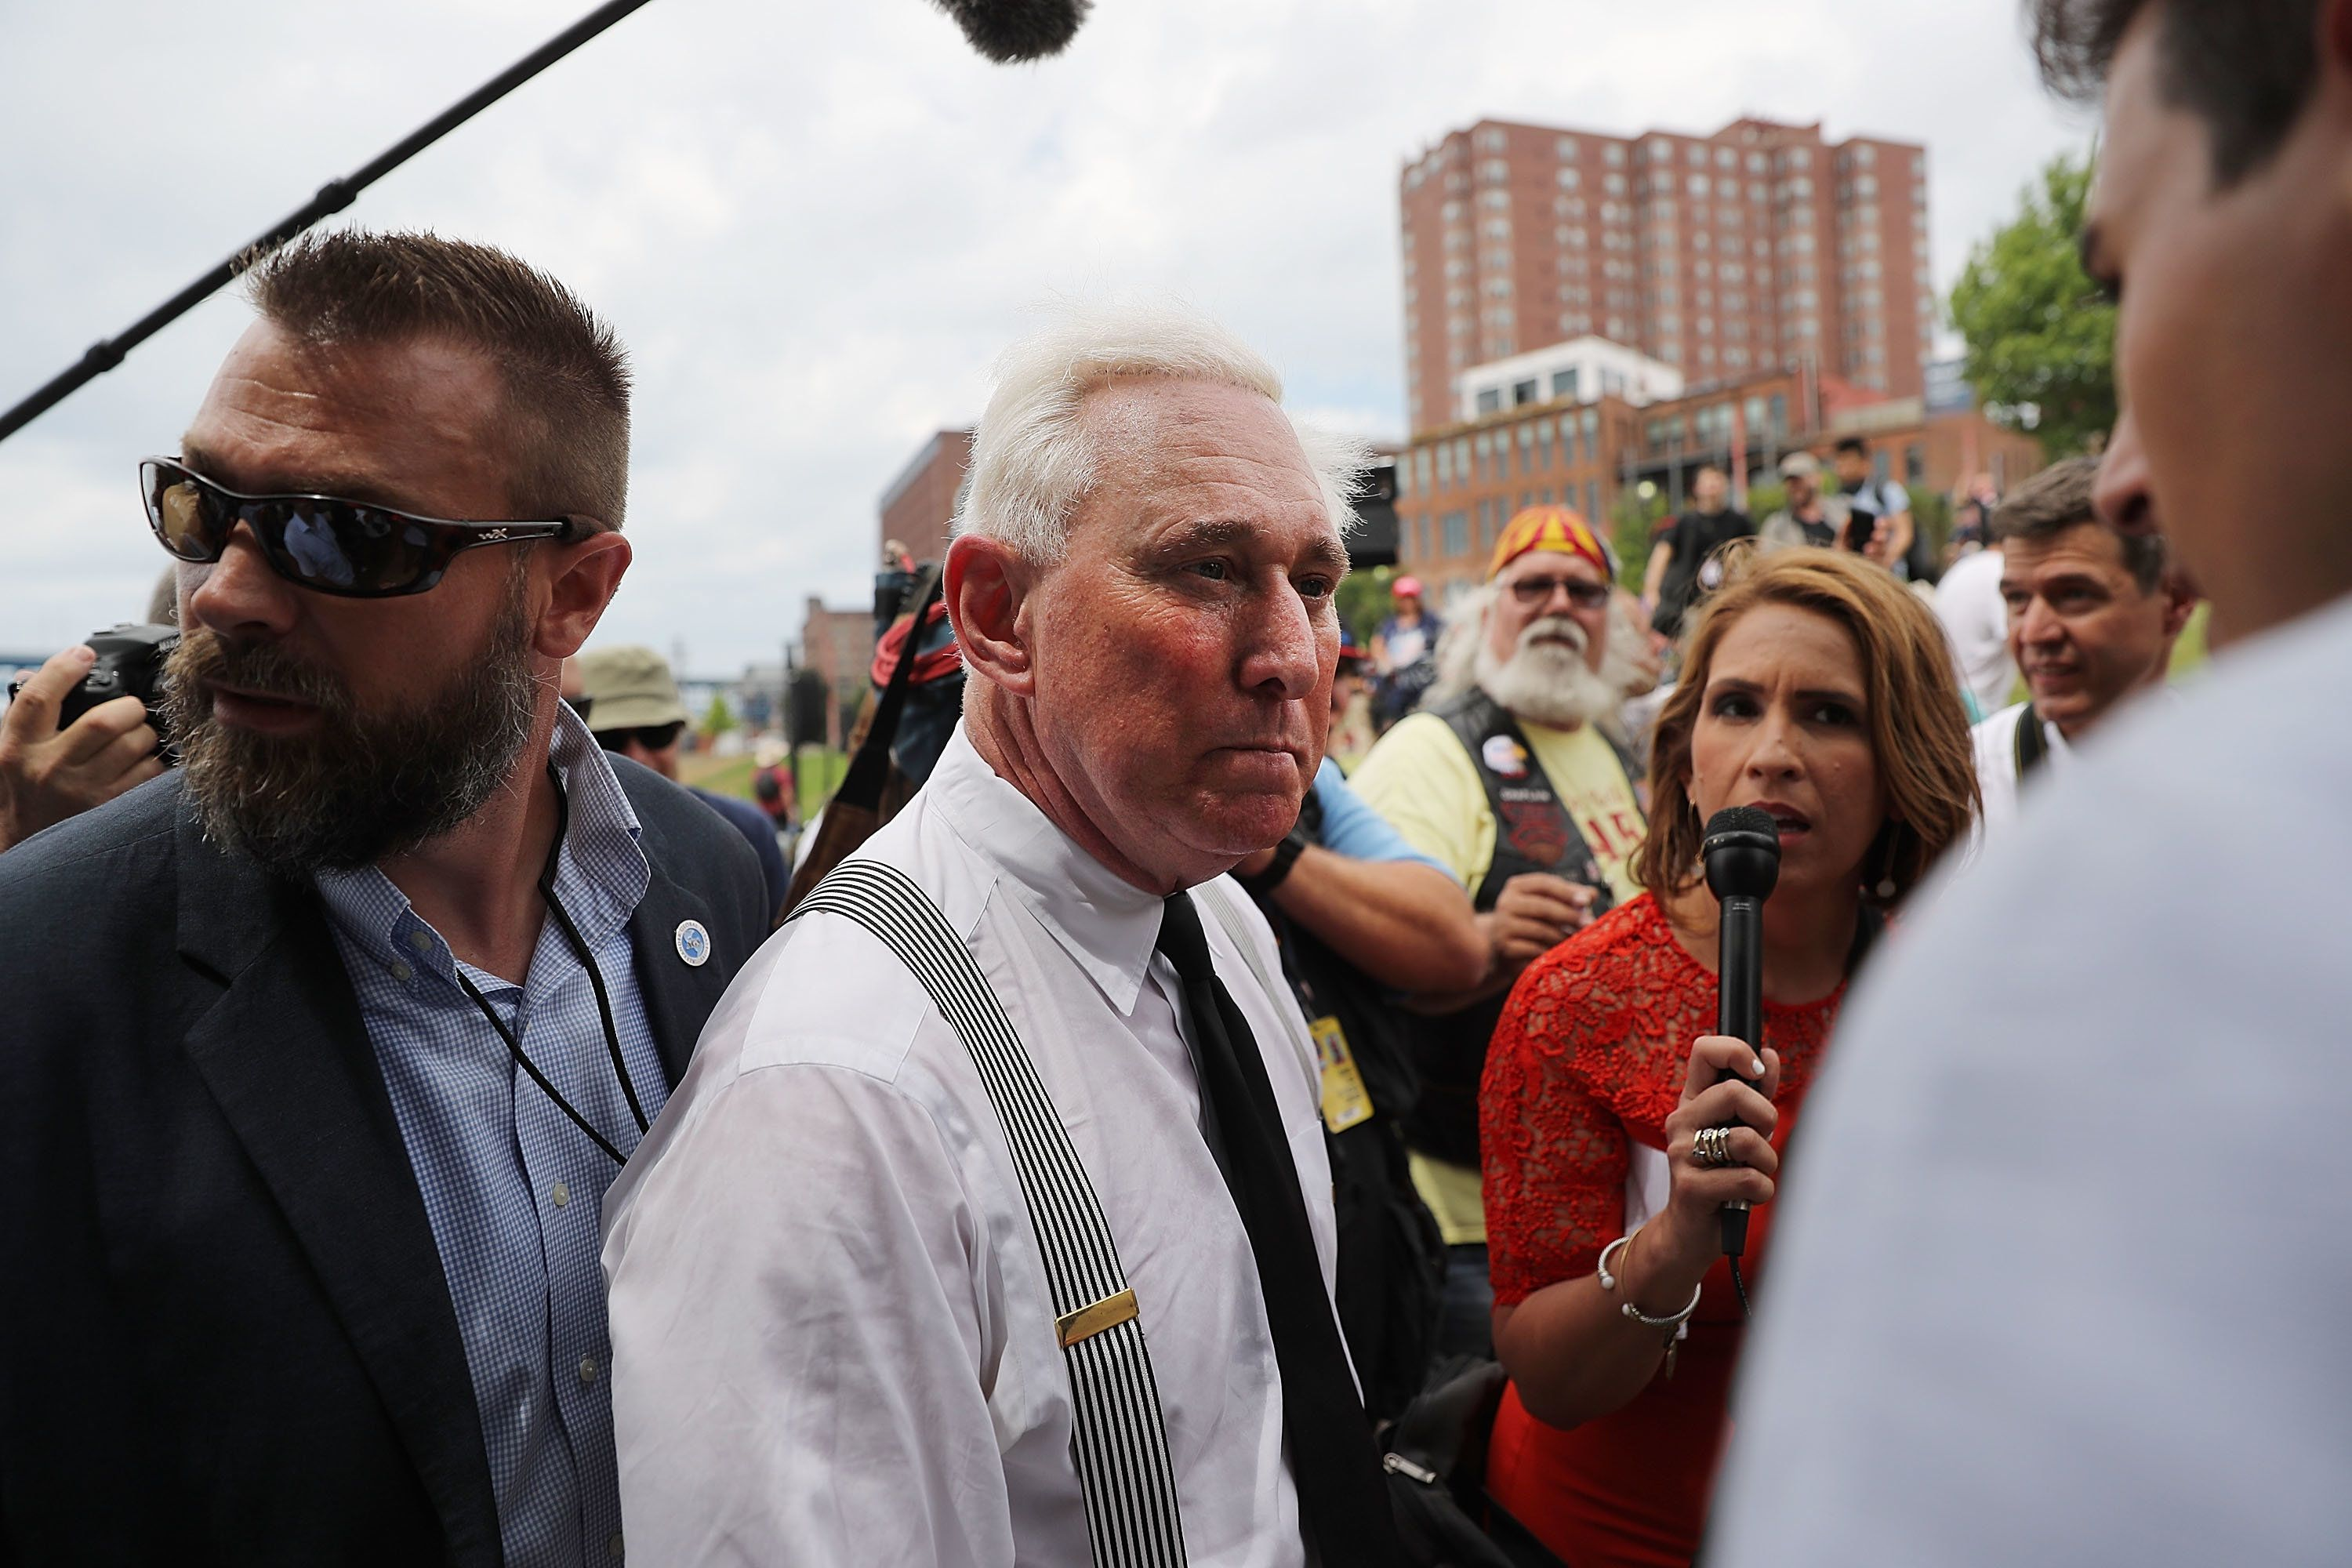 Spencer Platt via Getty Images Roger Stone on the campaign trail